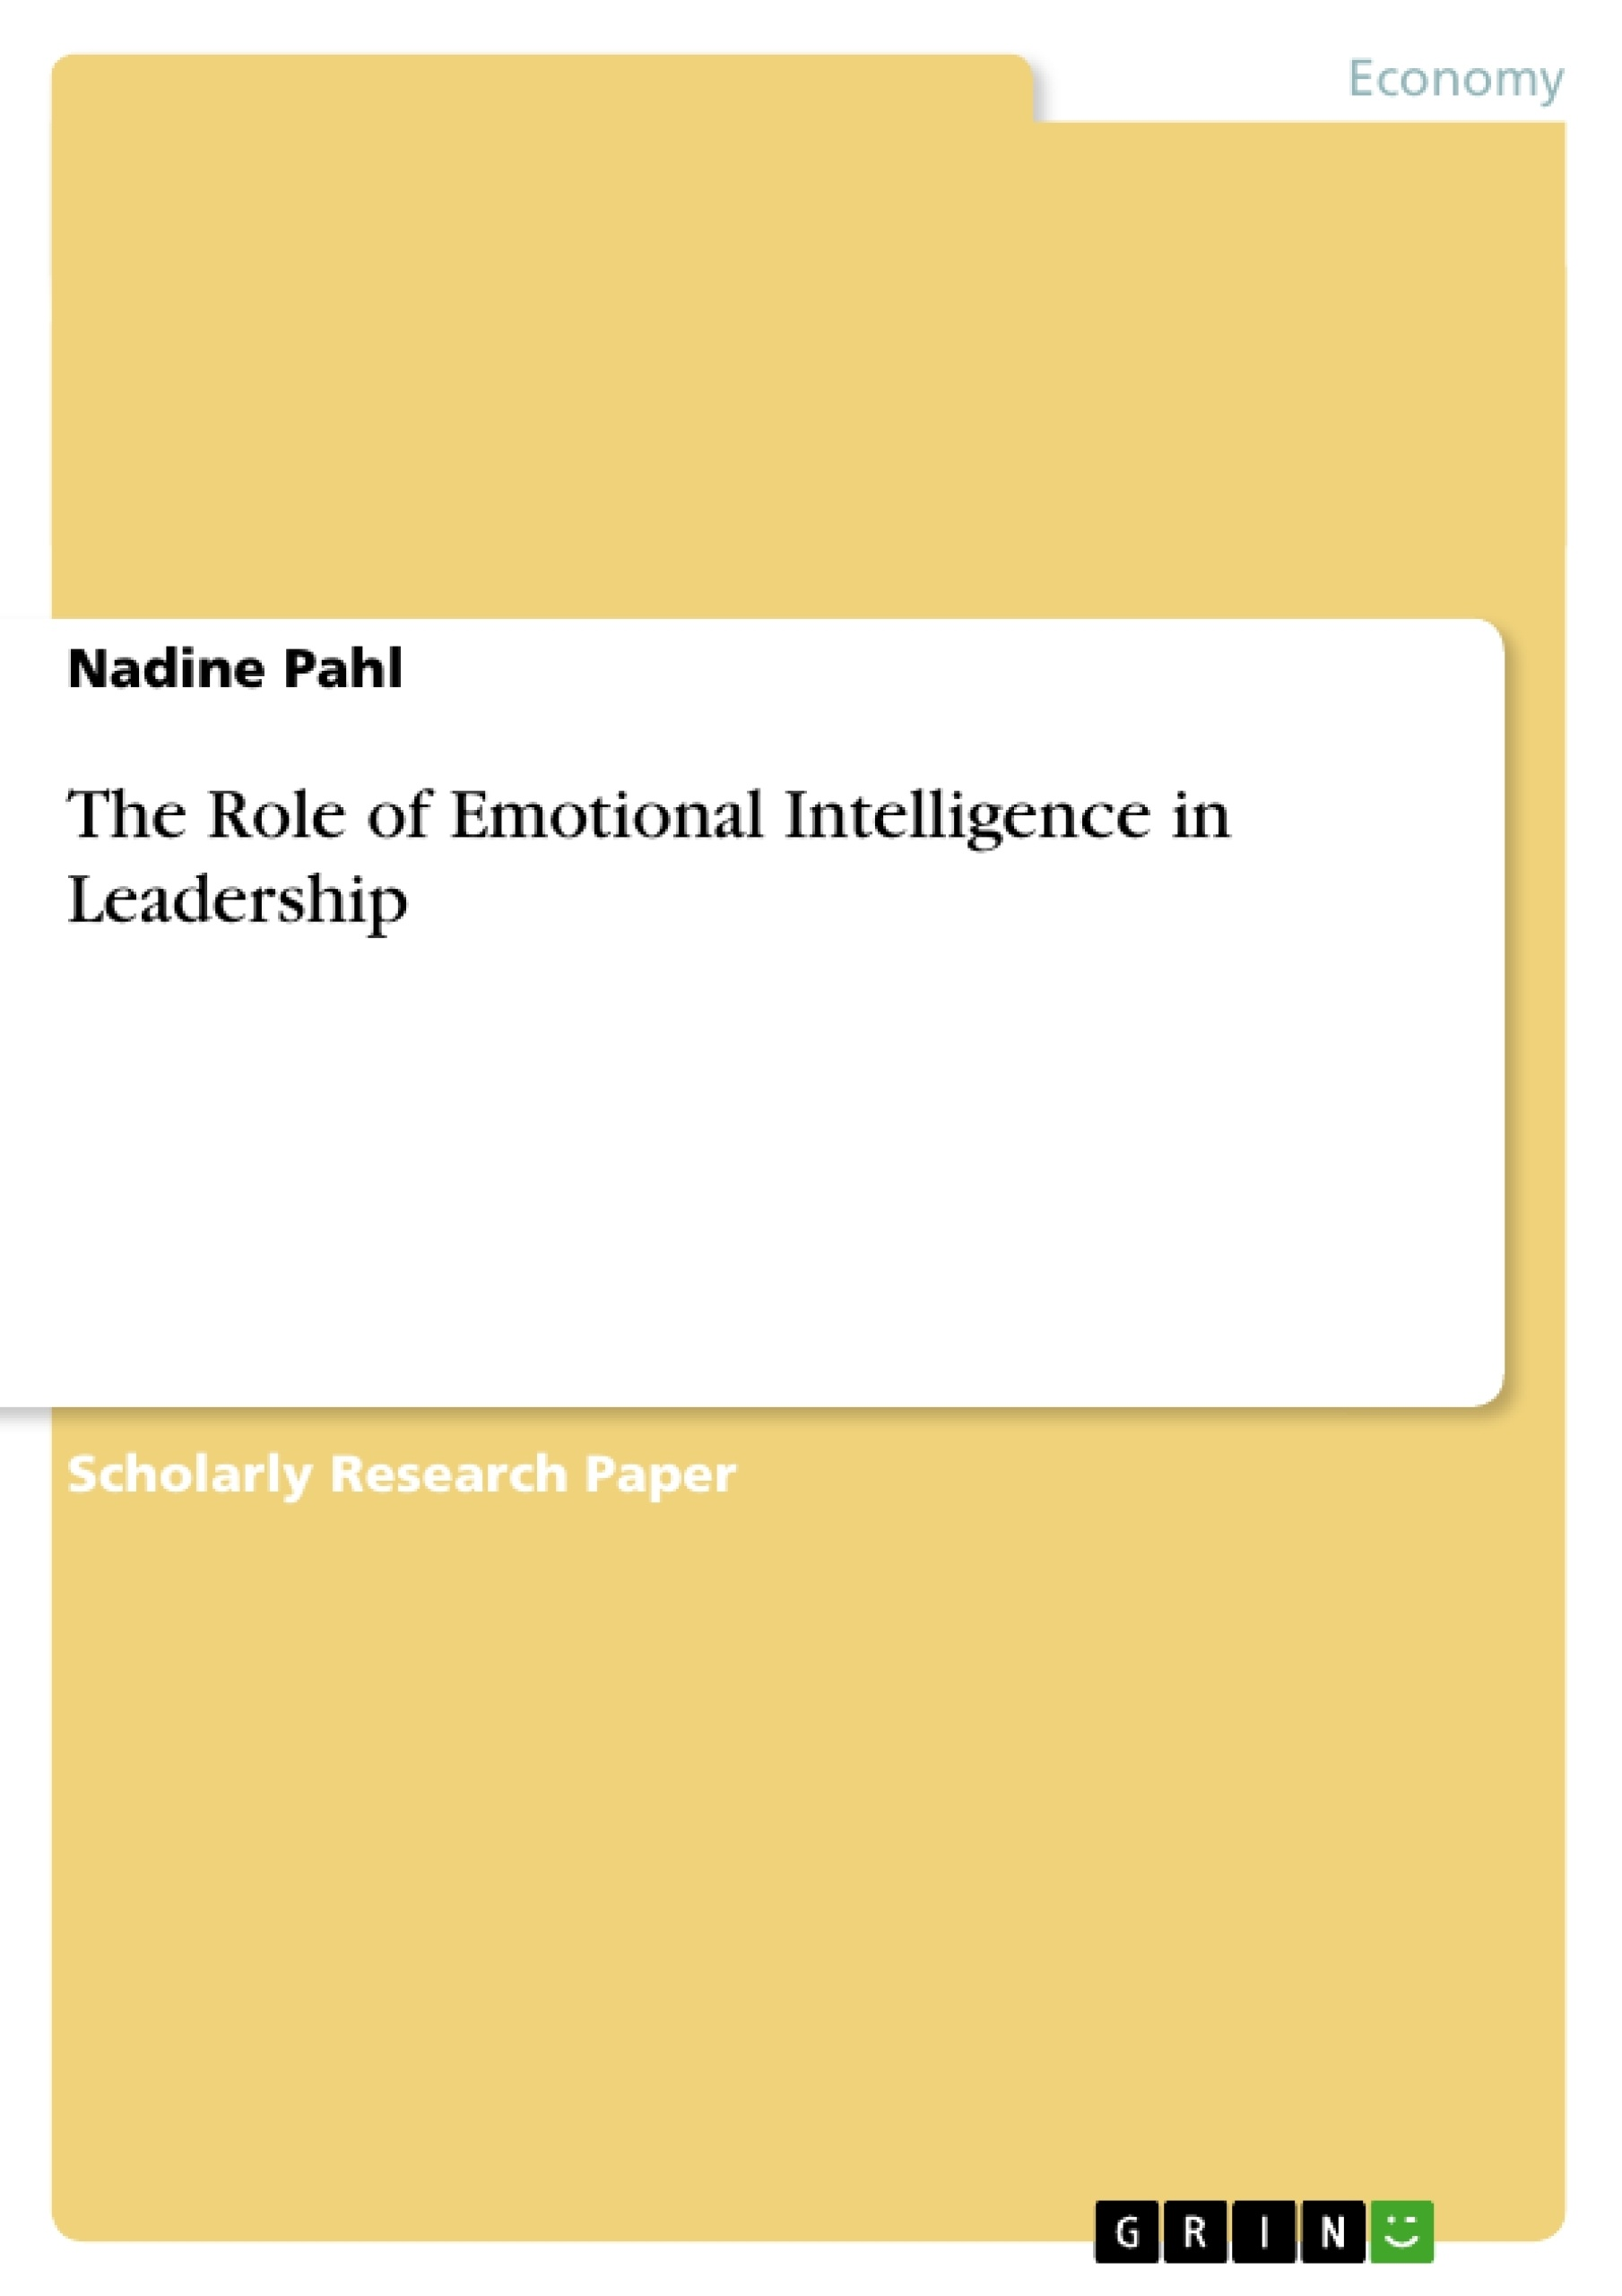 the role of emotional intelligence in leadership publish your the role of emotional intelligence in leadership publish your master s thesis bachelor s thesis essay or term paper